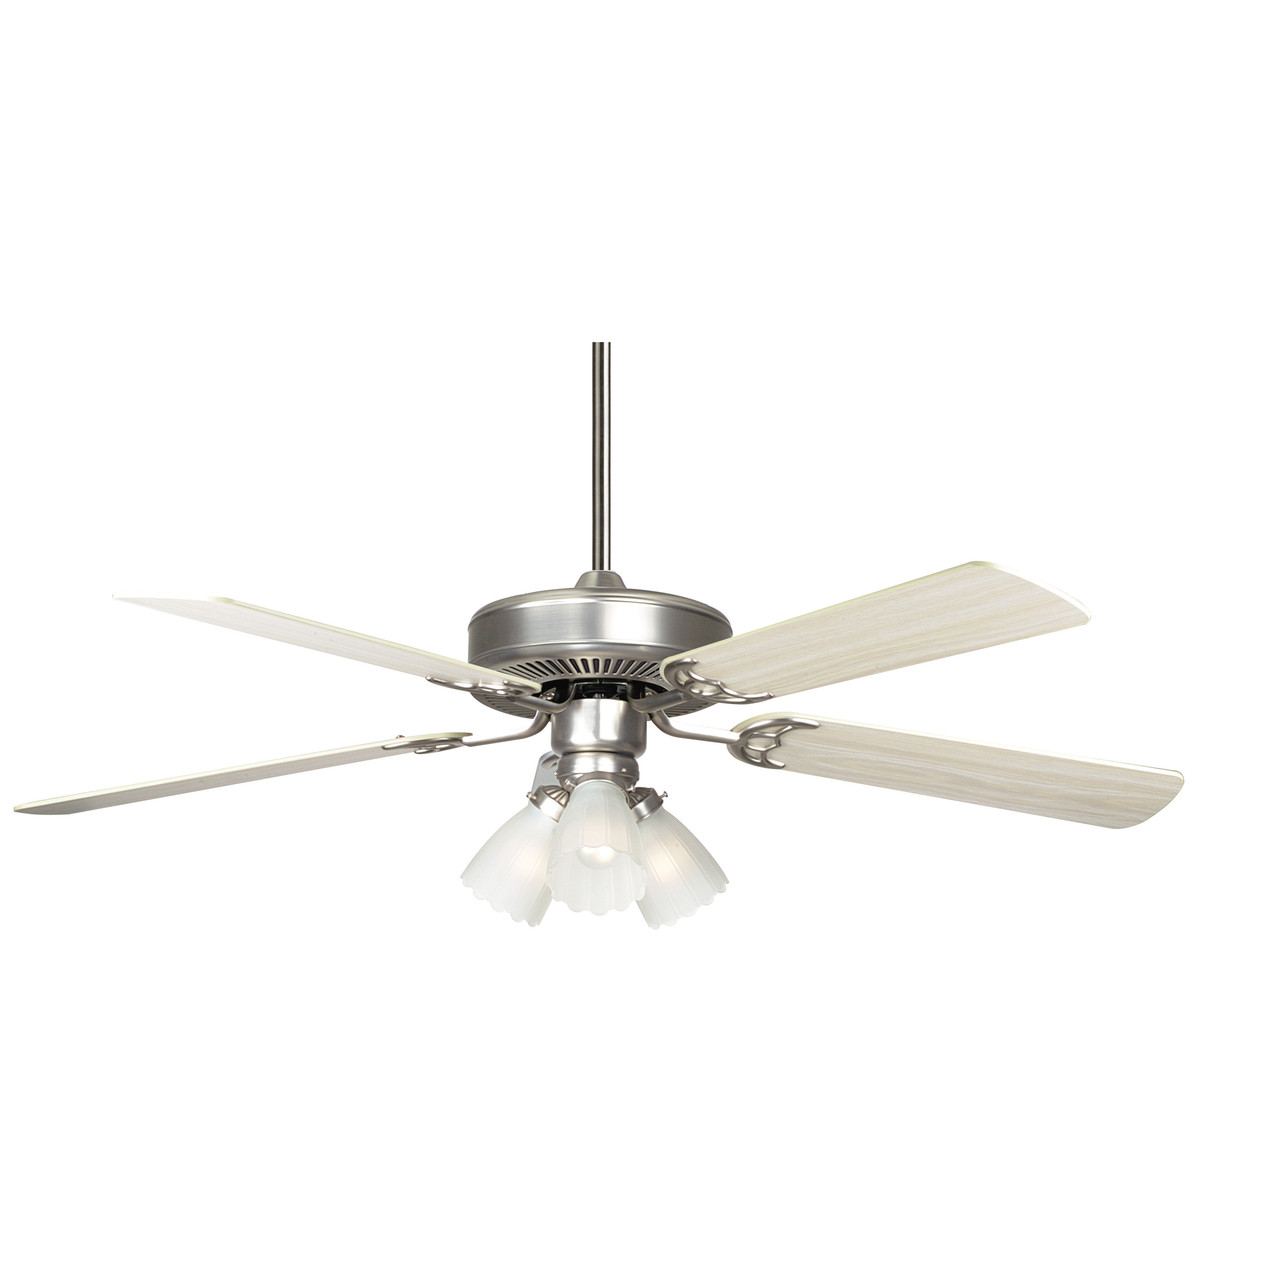 Concord Fans 52ha5esn 52 Home Air Ceiling Fan With 3 Light Kit In Satin Nickel At Clw Lighting